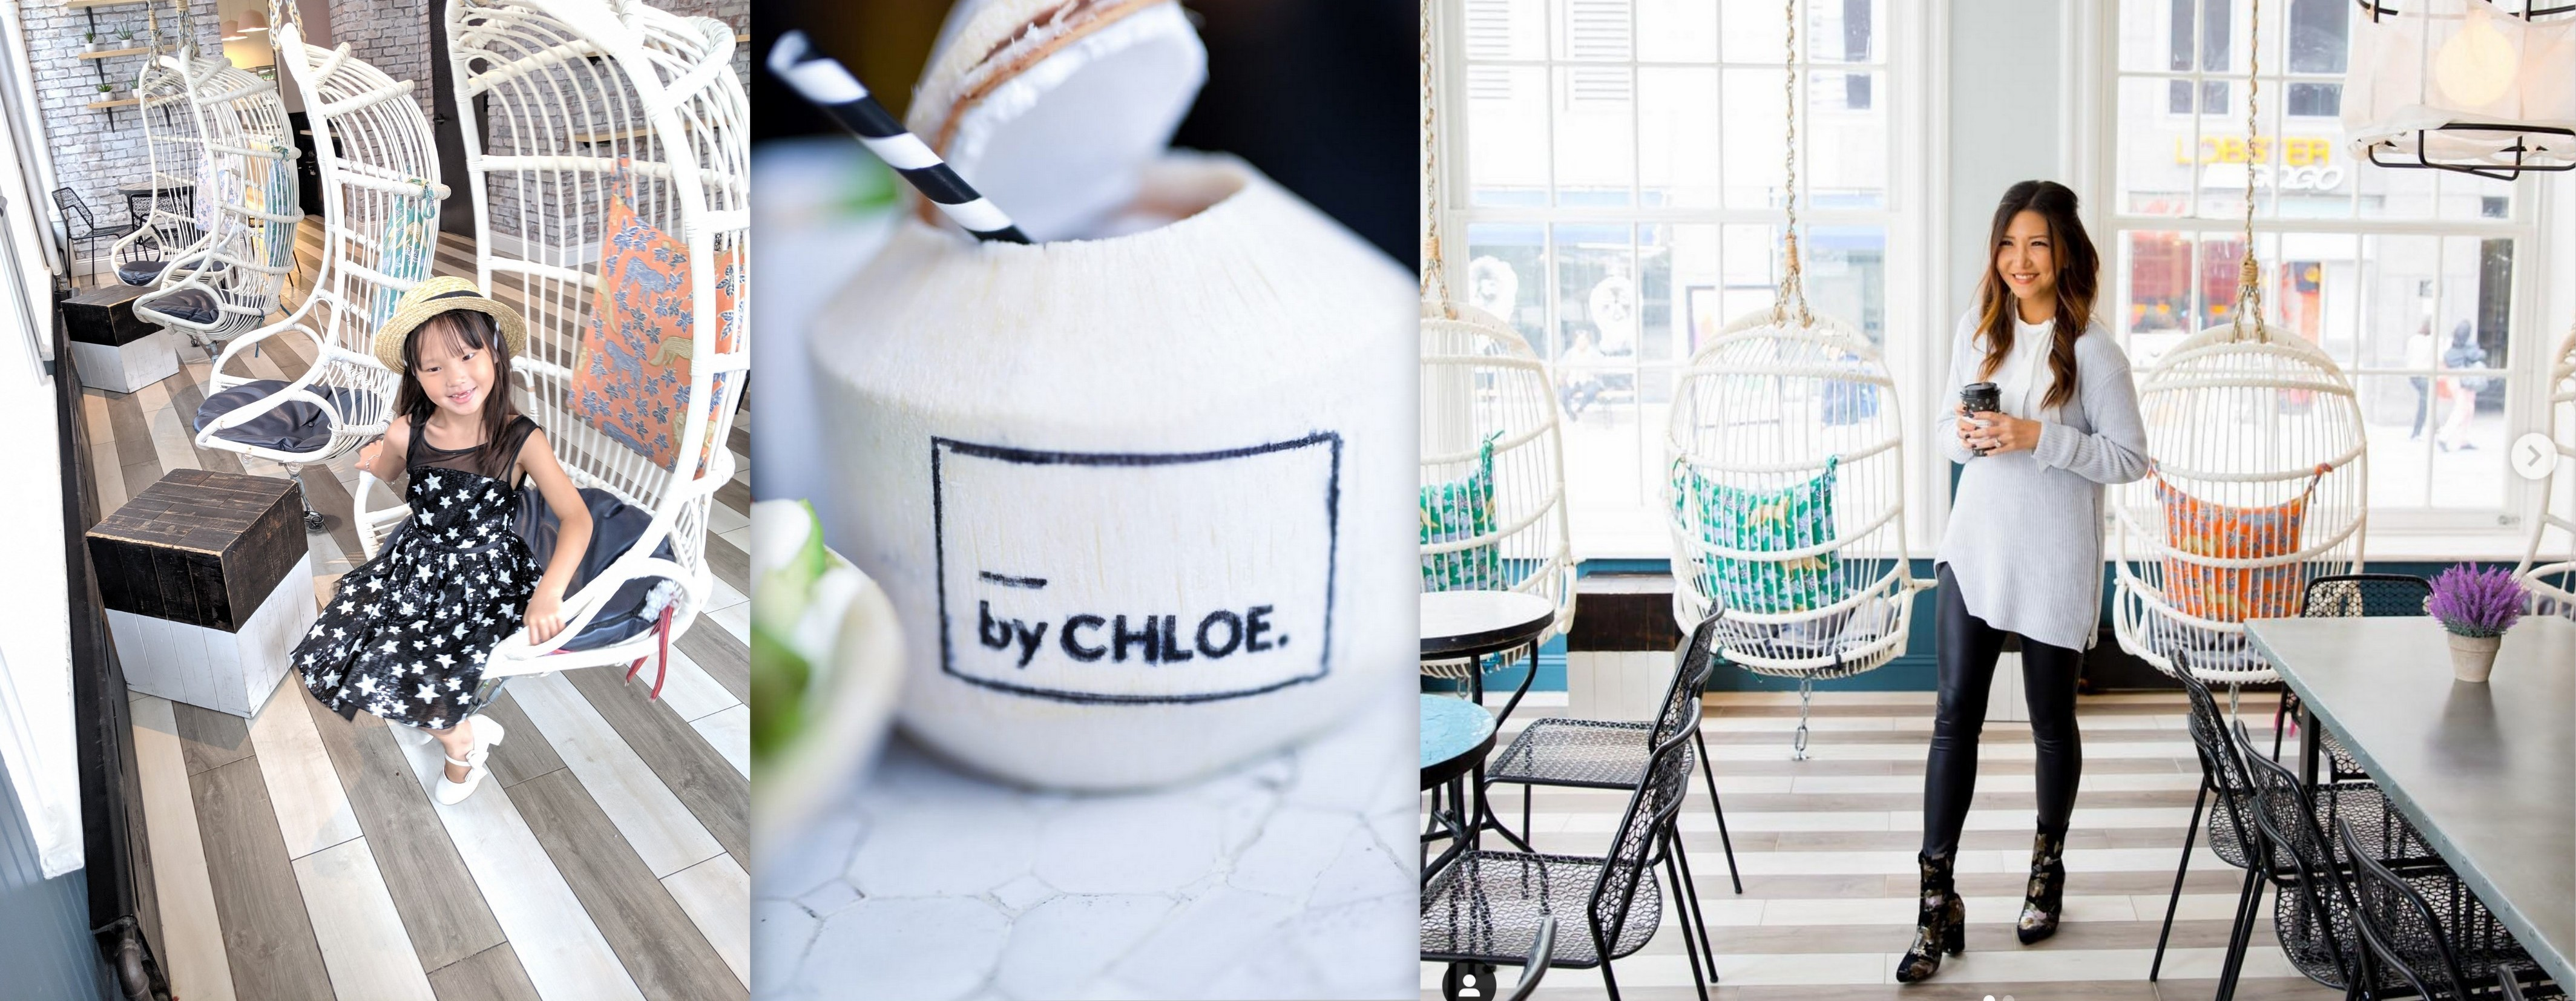 eat by chloe nyc, eat by chloe seaport, eat by chloe south street seaport, eat by chloe downtown